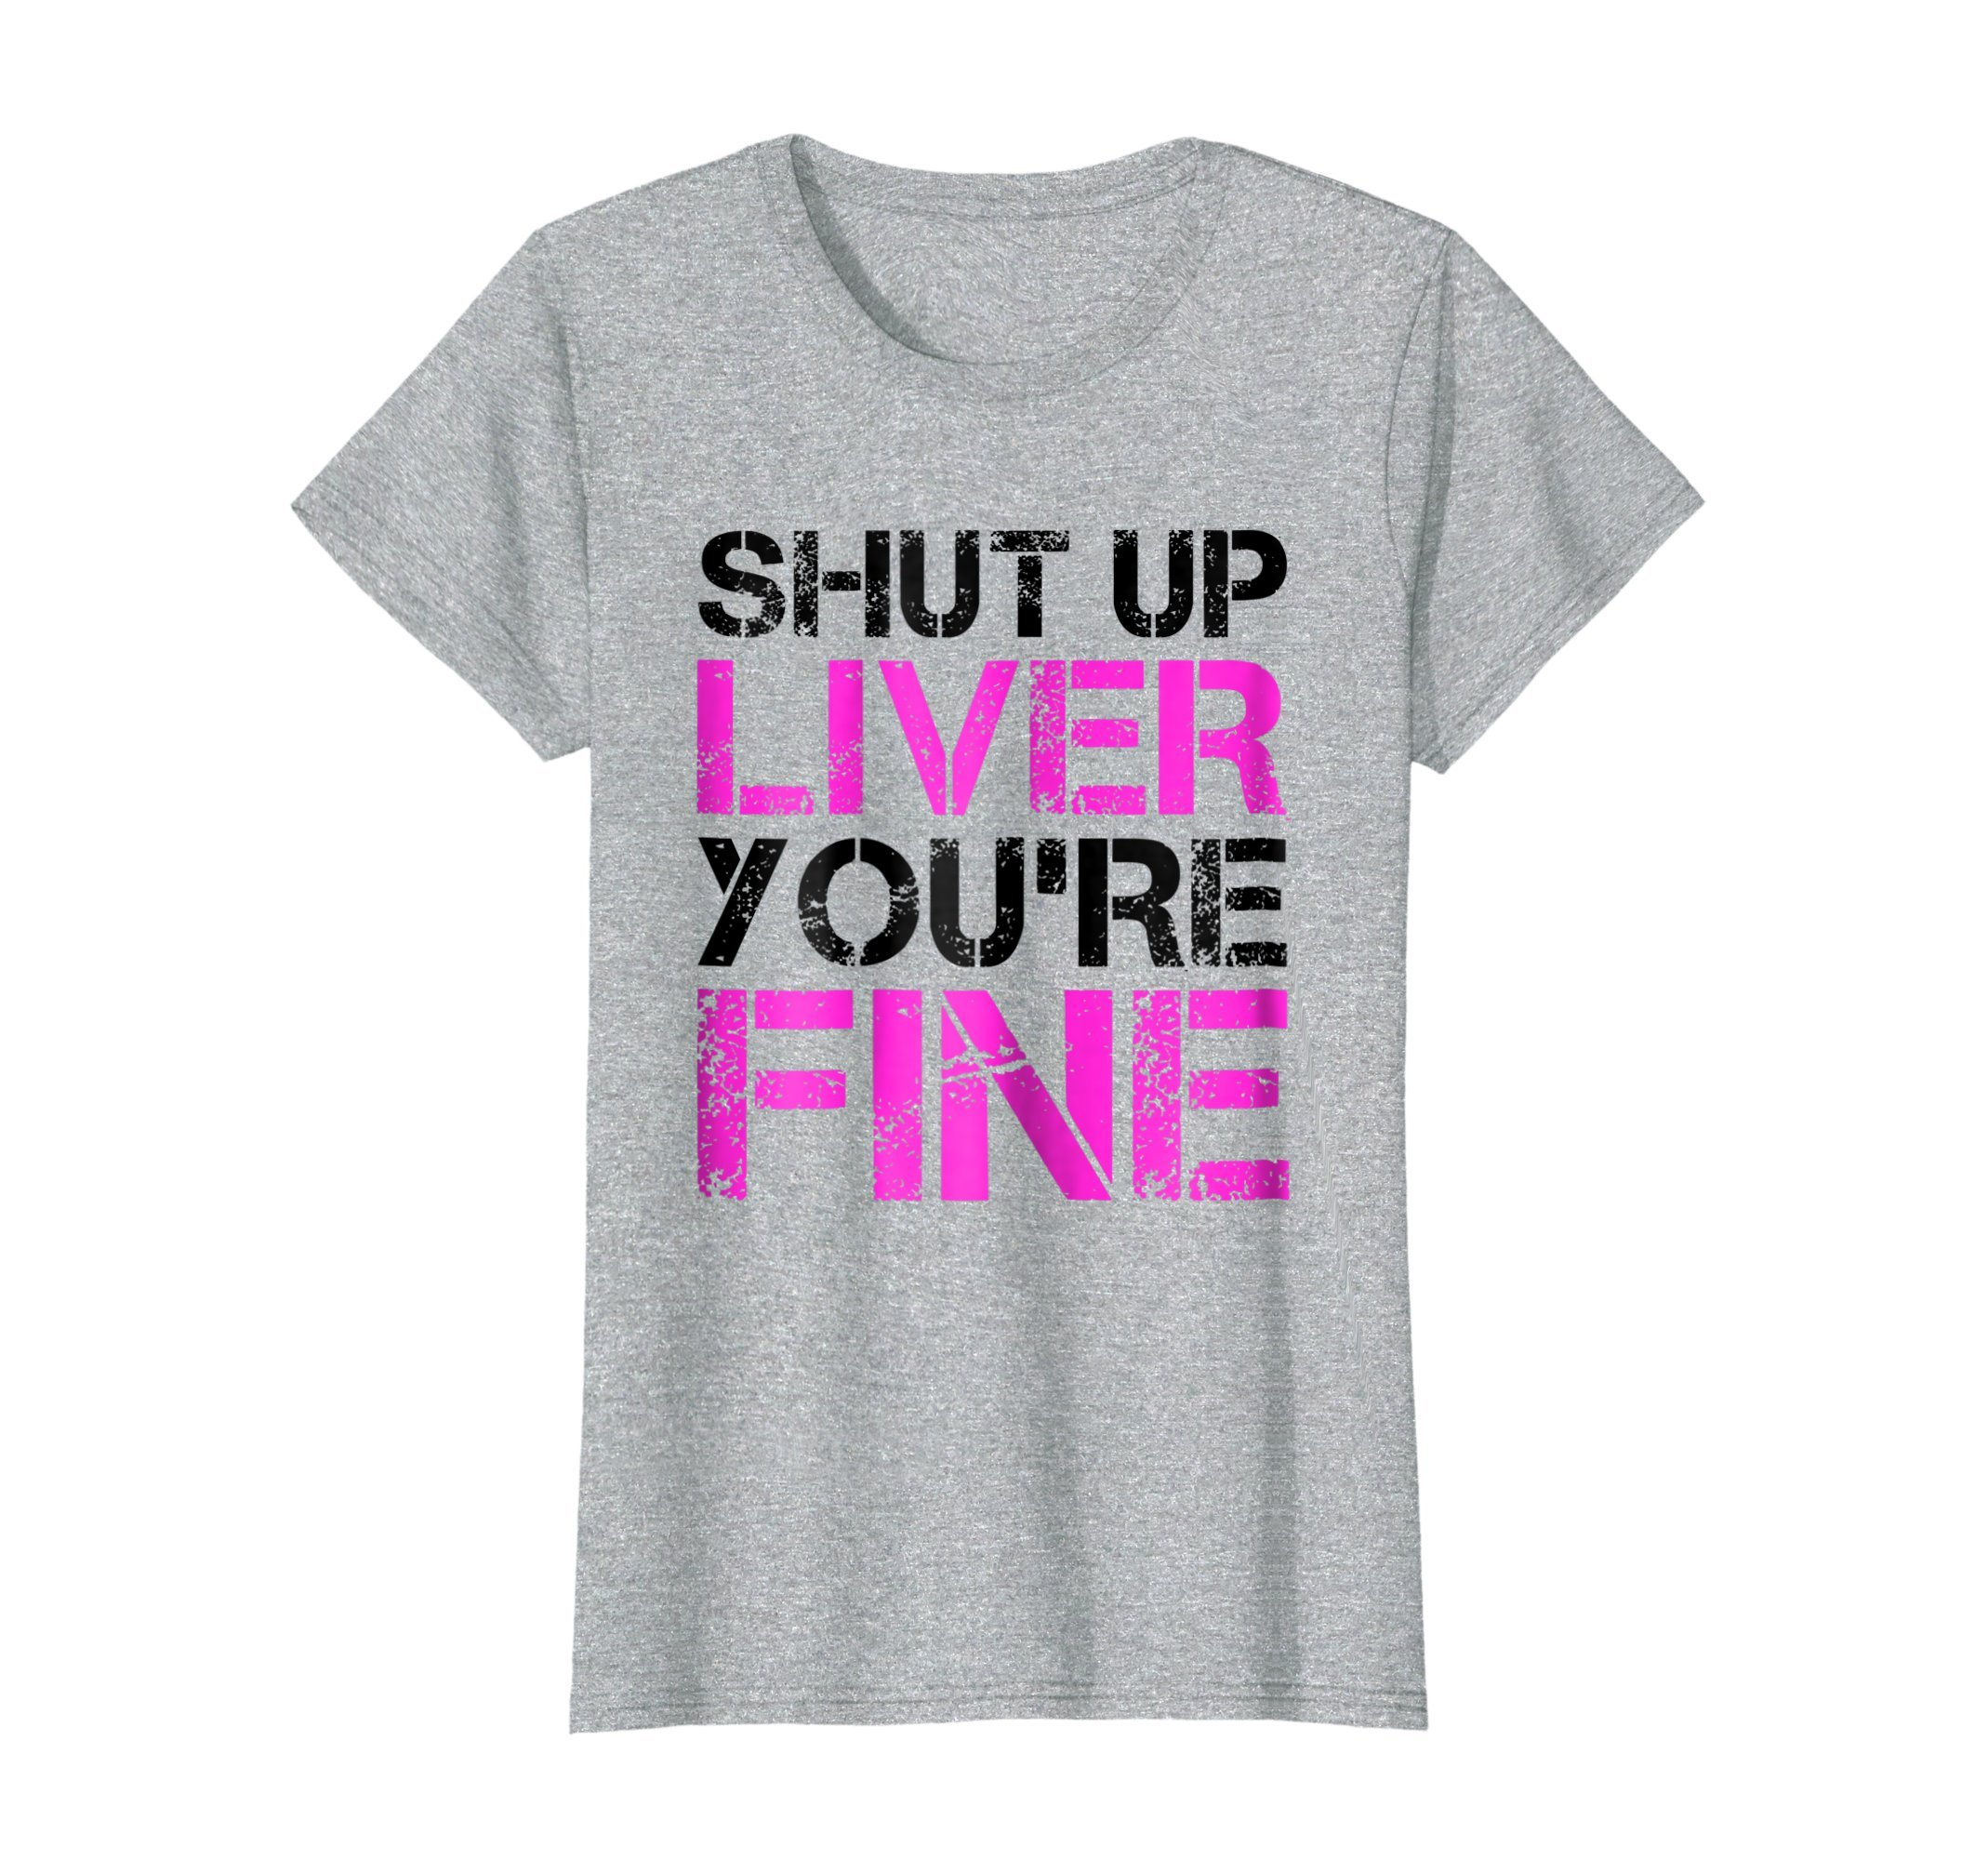 Womens Shut Up Liver You're Fine T-Shirt. Funny Drinking Beer Shirt XL Heather Grey